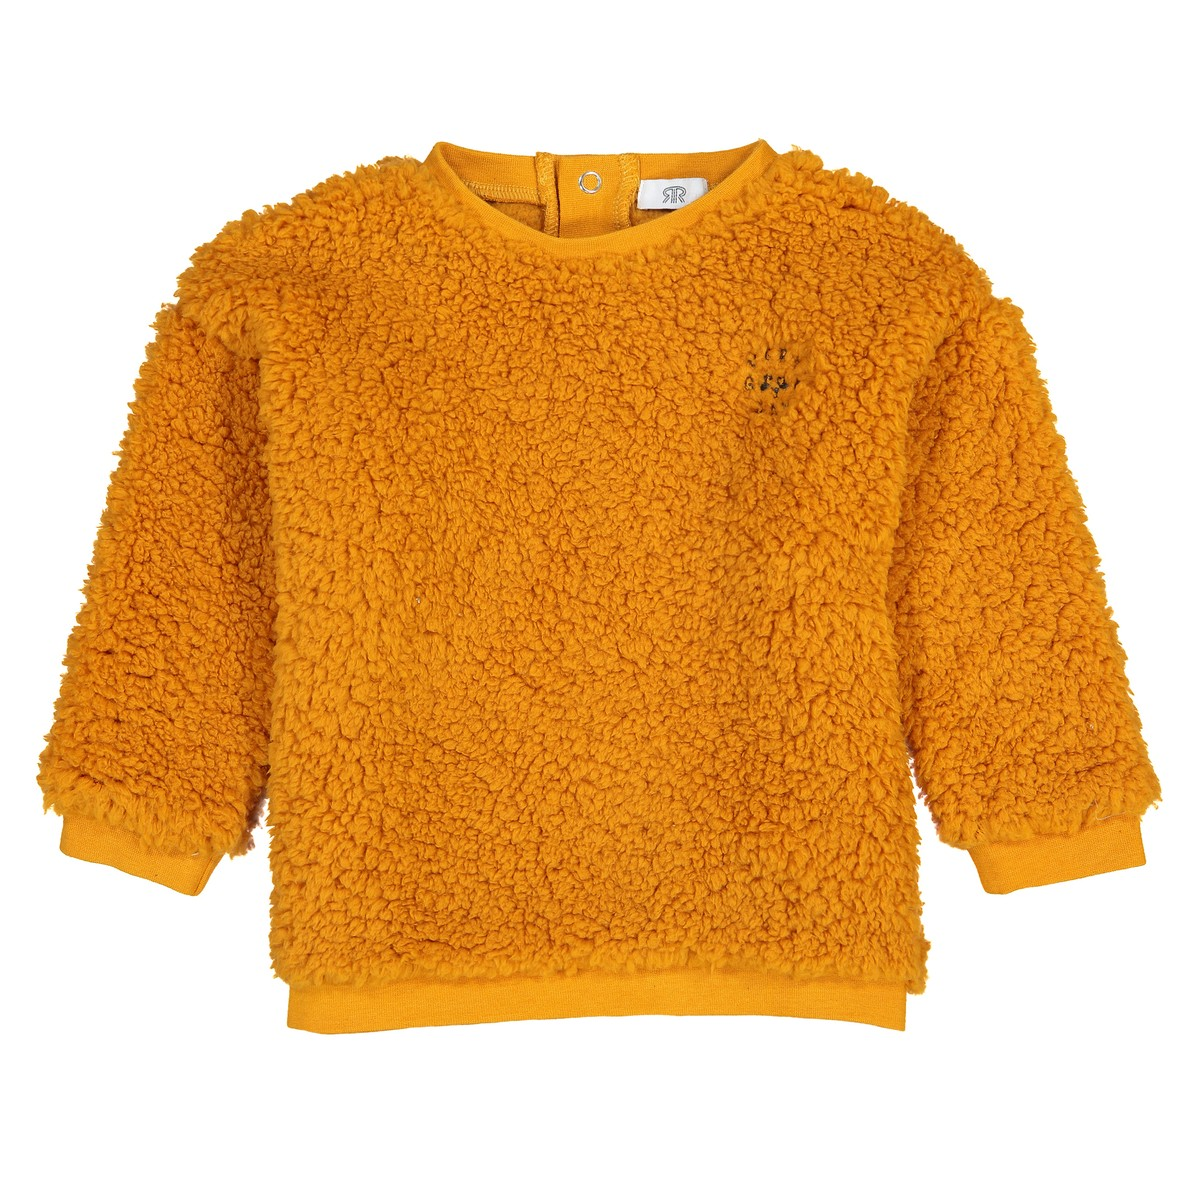 ochre-fluffy-sweatshirt